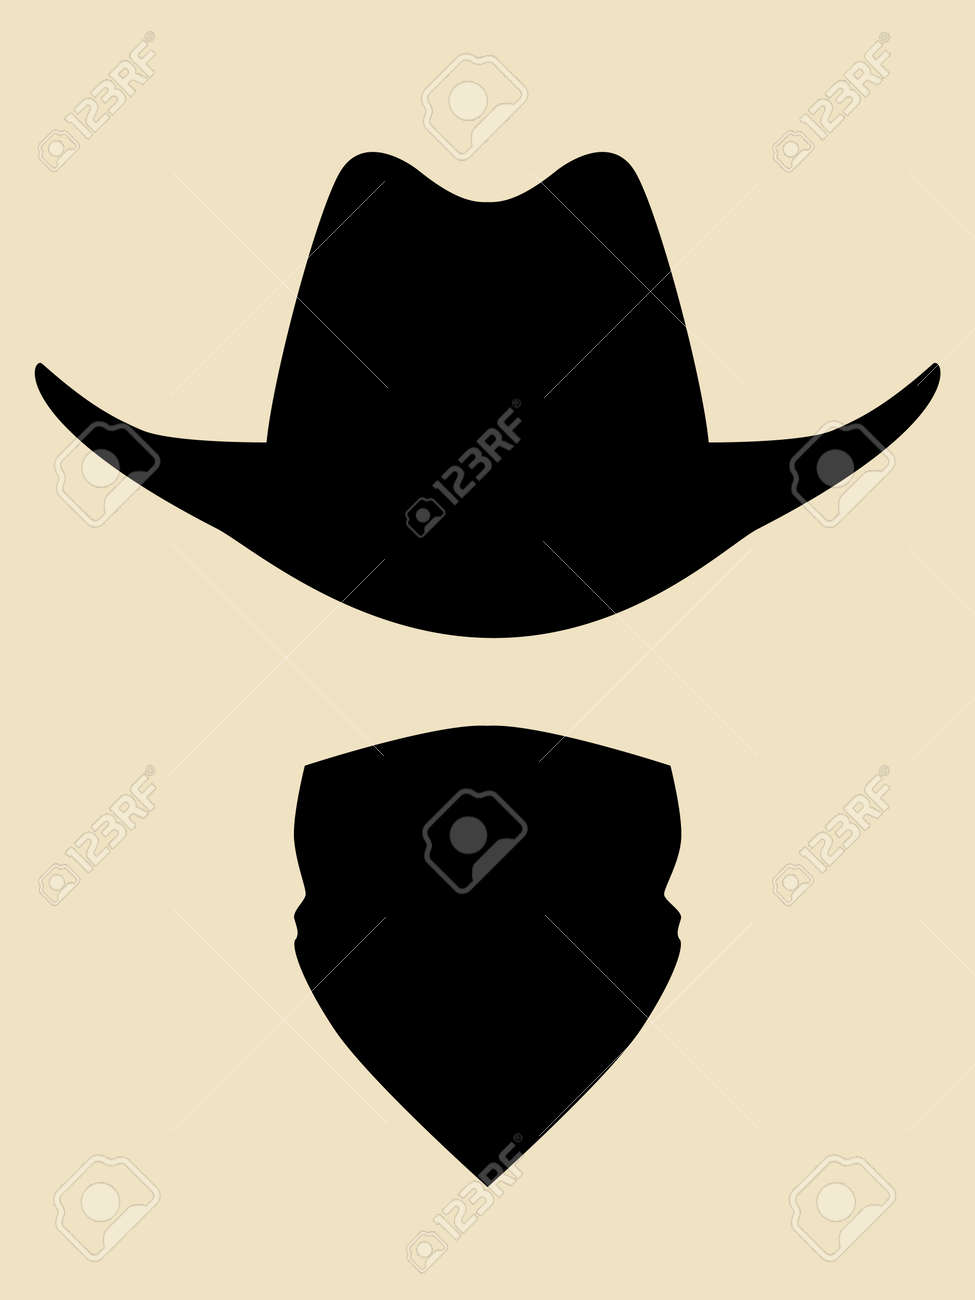 Cowboy Hat And Bandana Covering Face Symbol Royalty Free Cliparts ... fcc4457cbcf